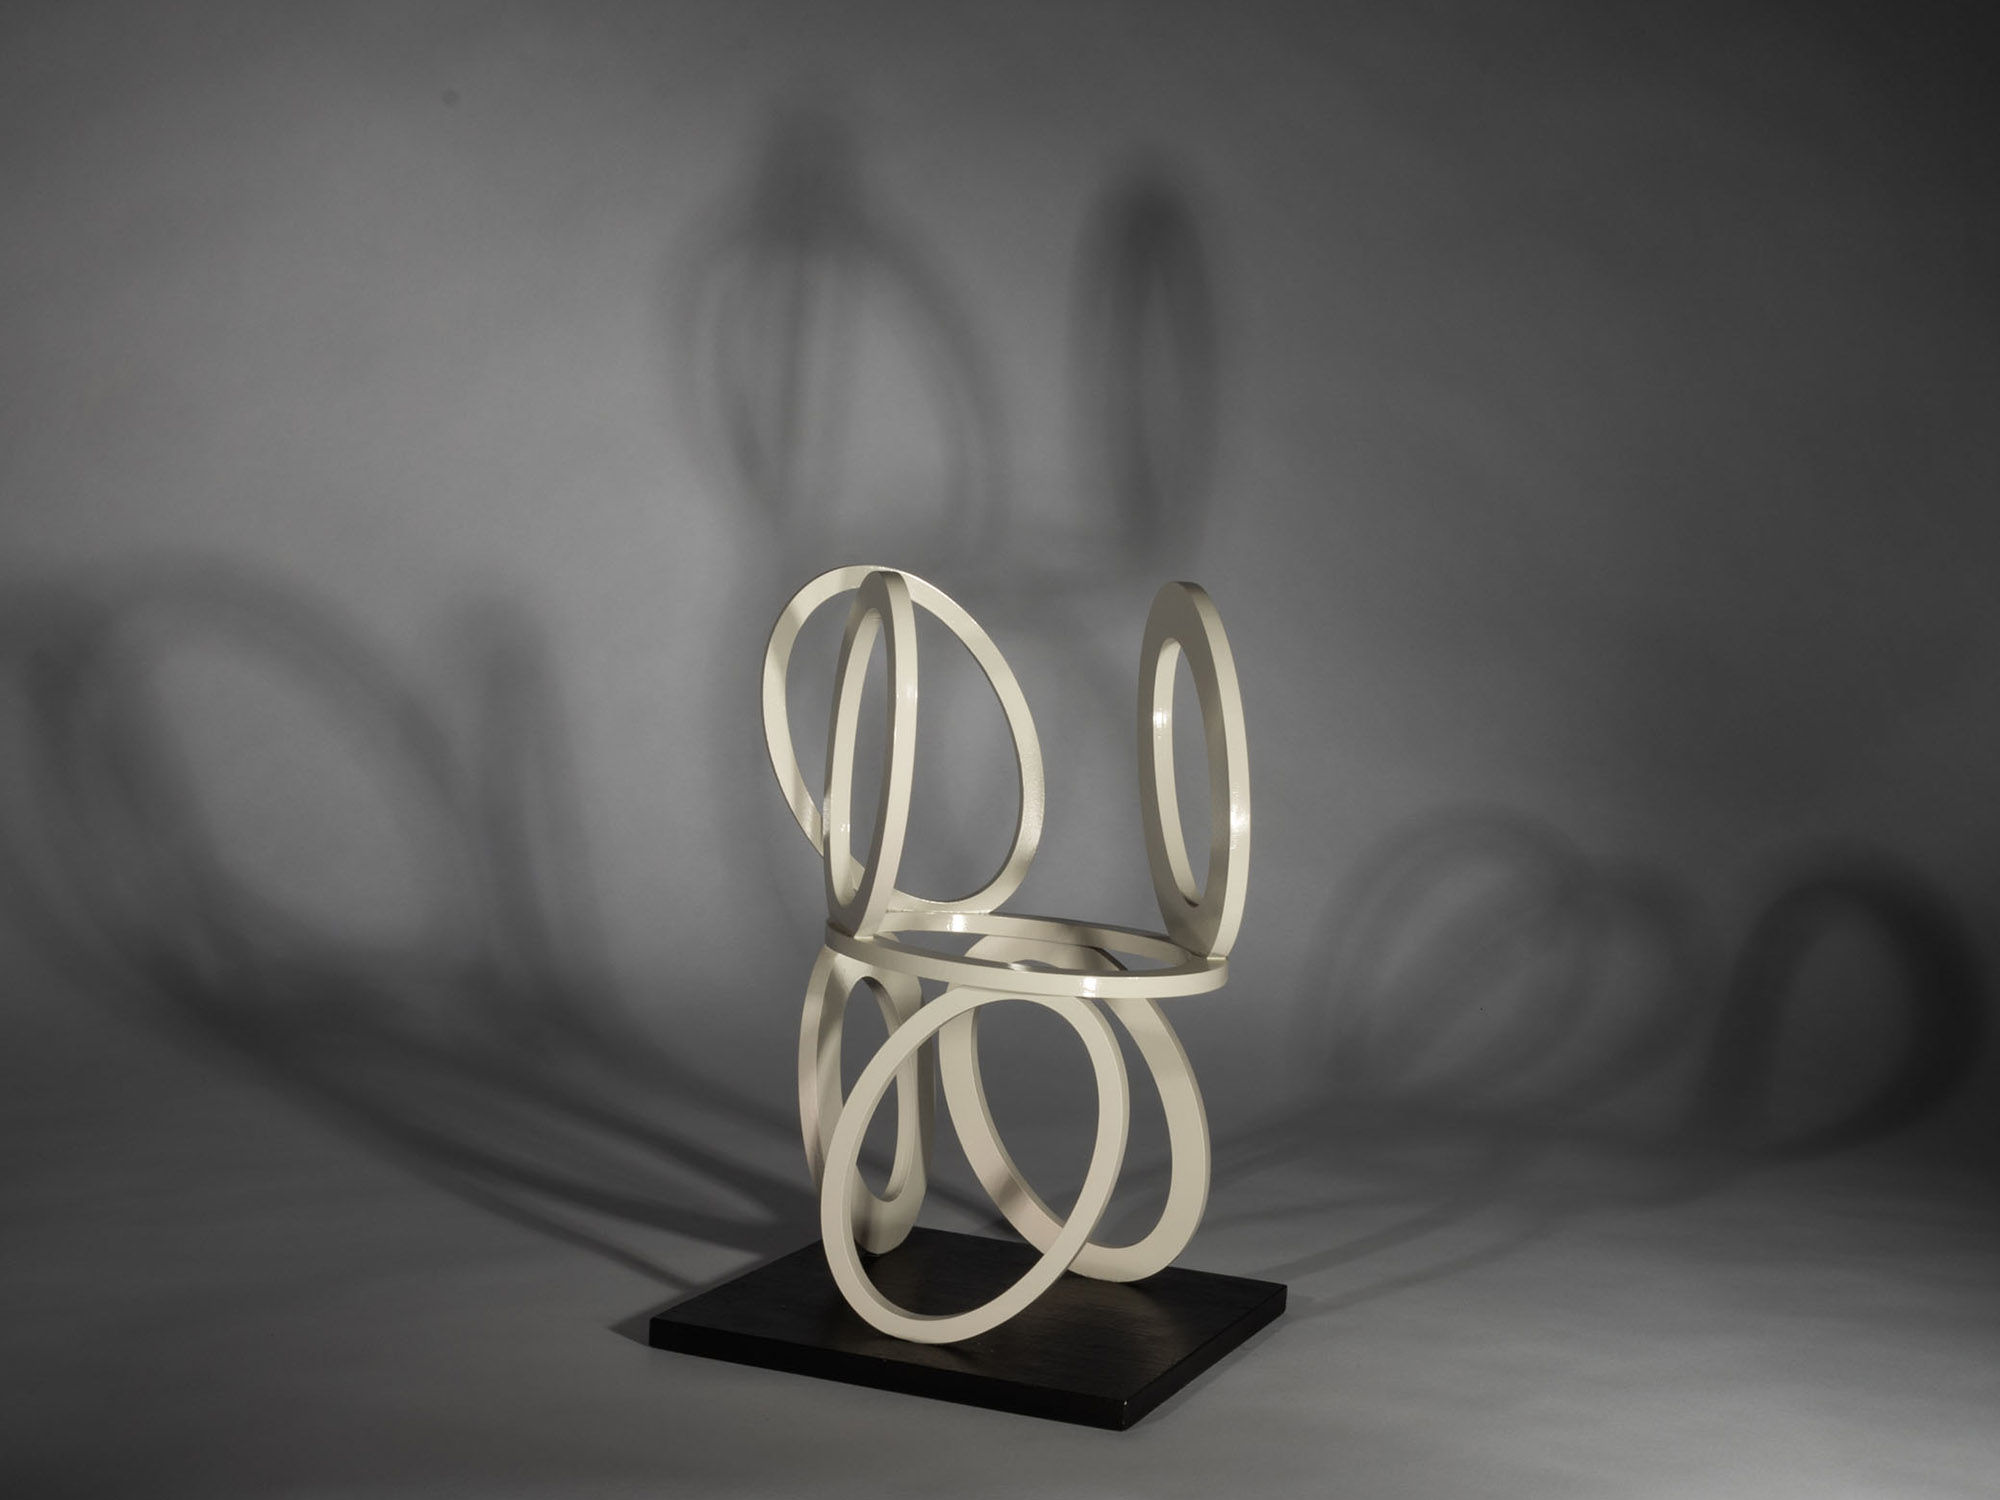 'Slow Motion' Maquette by Nigel Hall b.1943